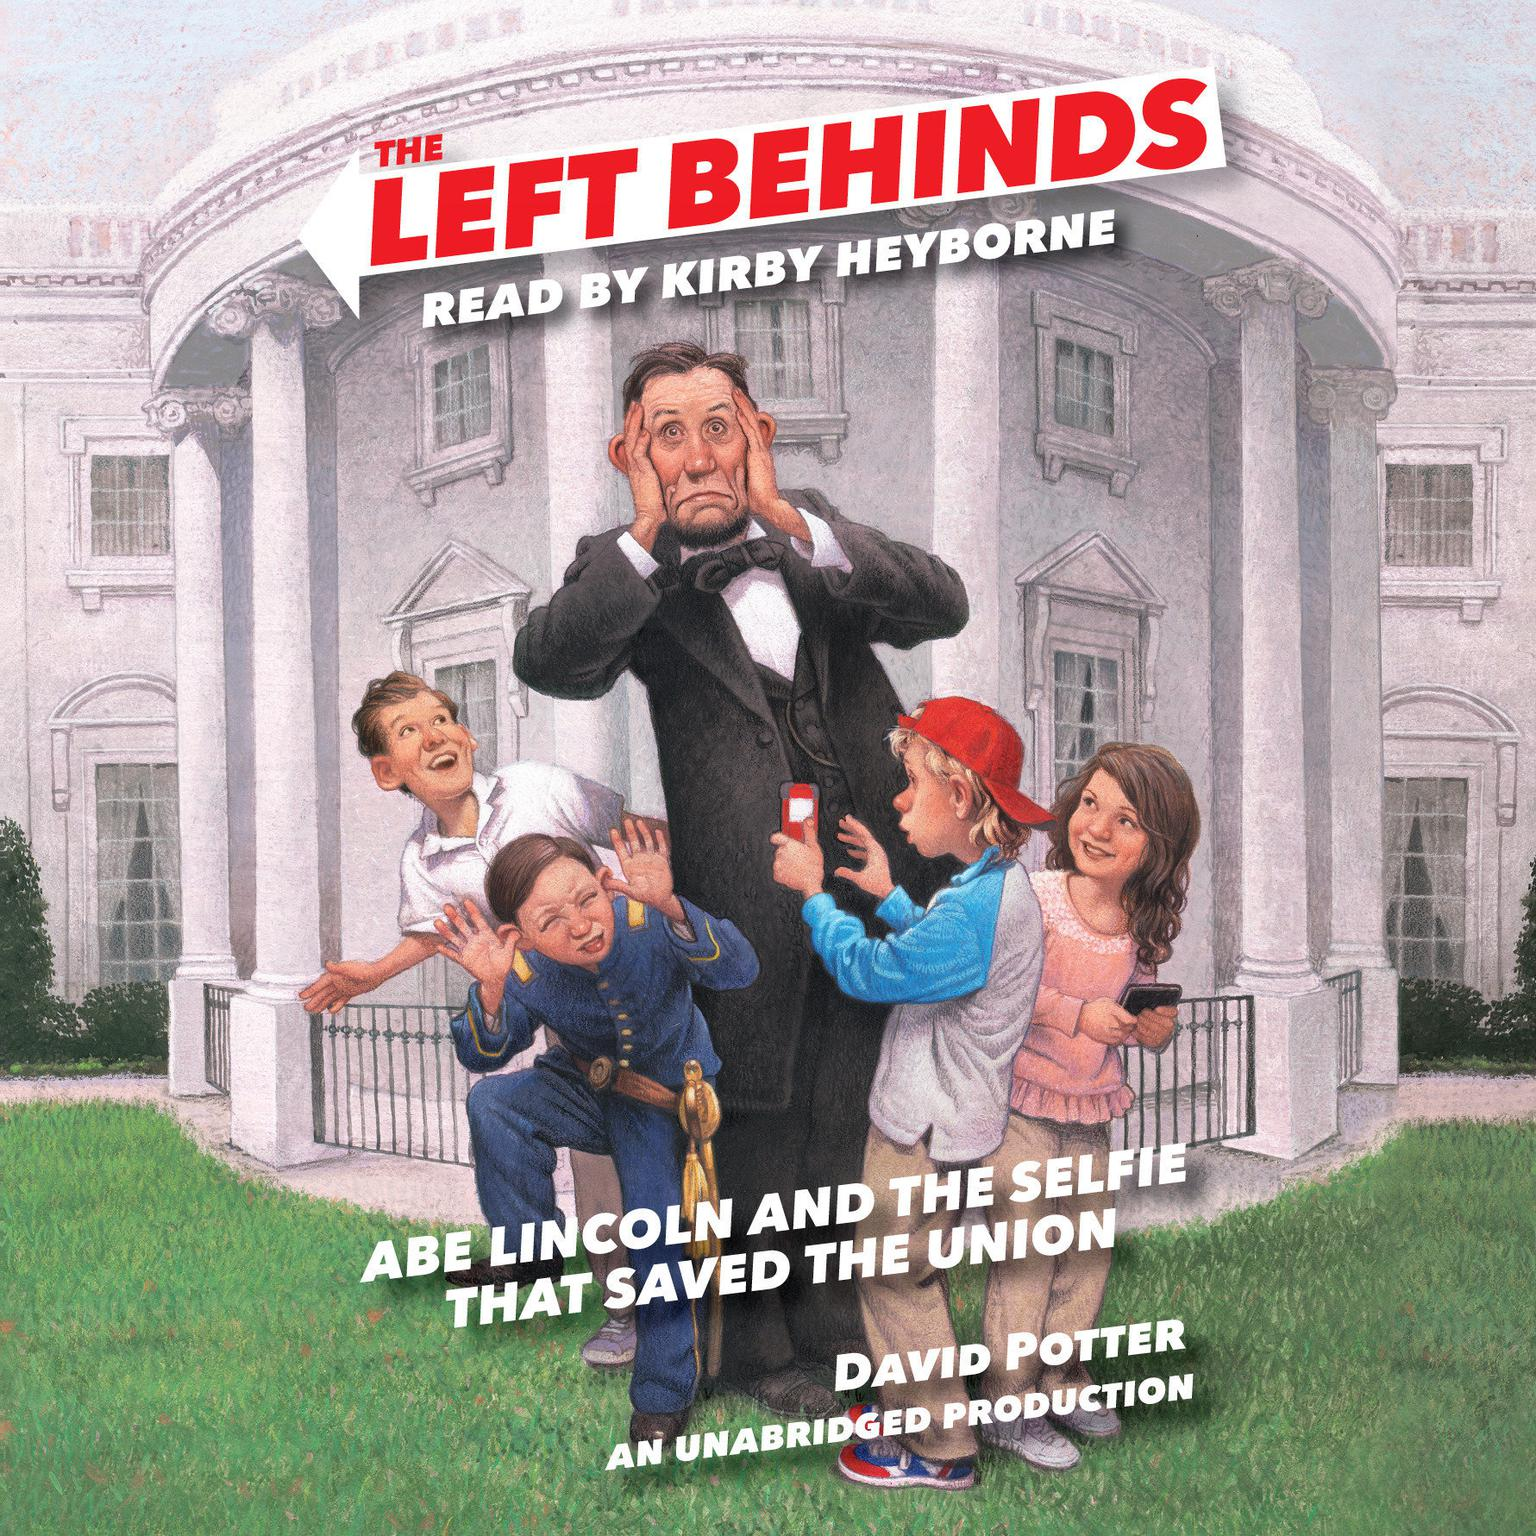 Printable The Left Behinds: Abe Lincoln and the Selfie that Saved the Union Audiobook Cover Art